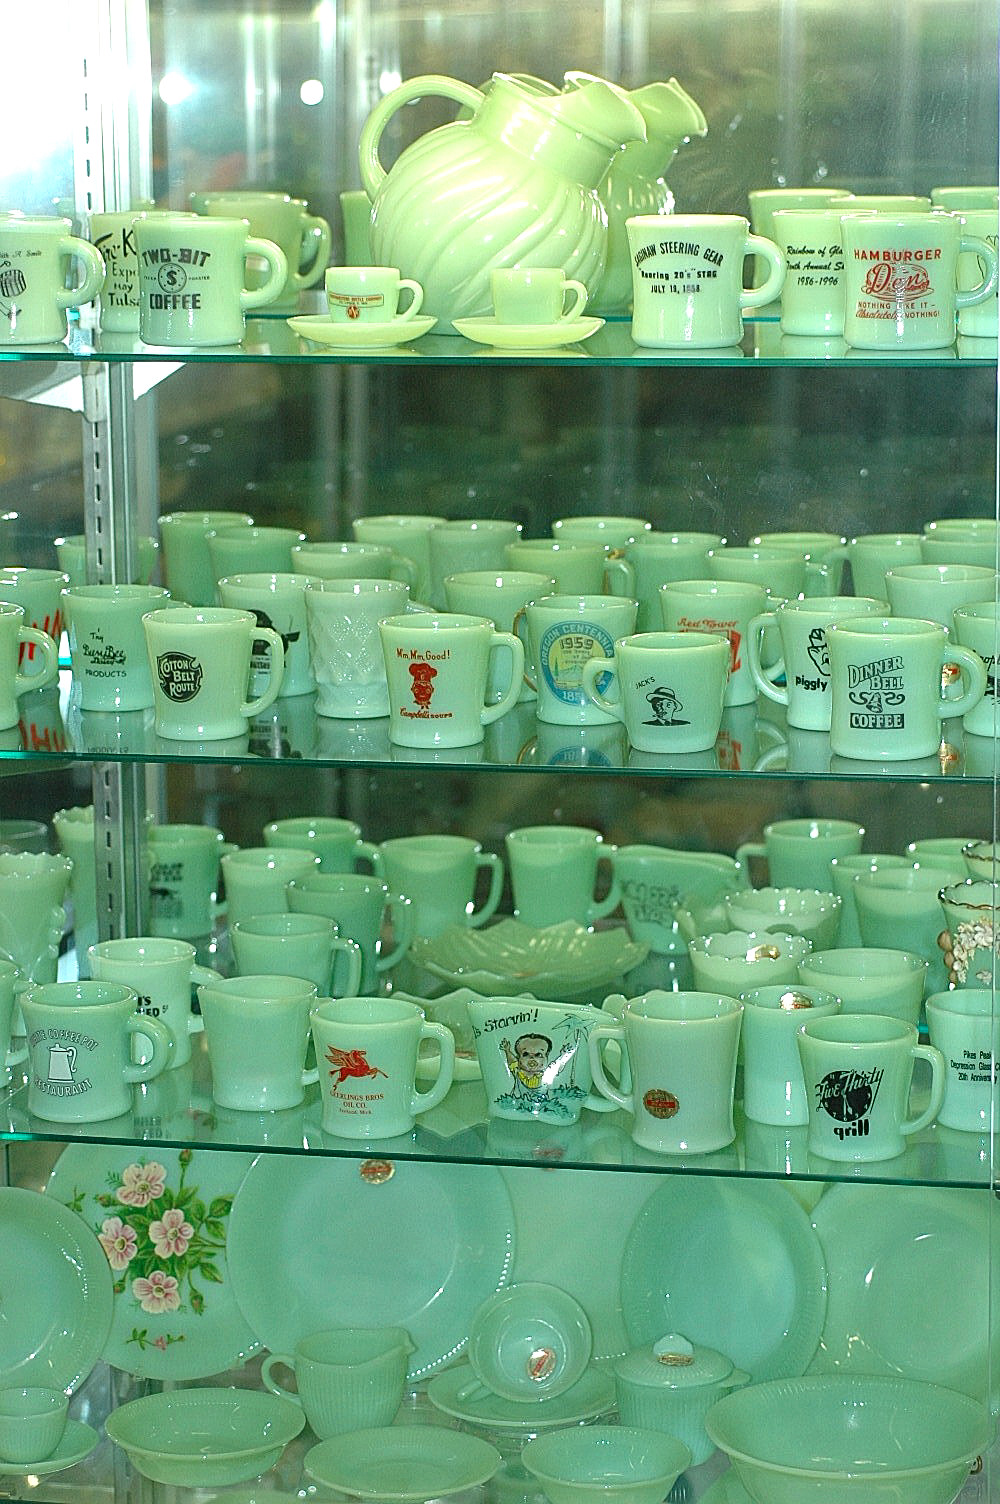 Forest Green - a portion of the museum!